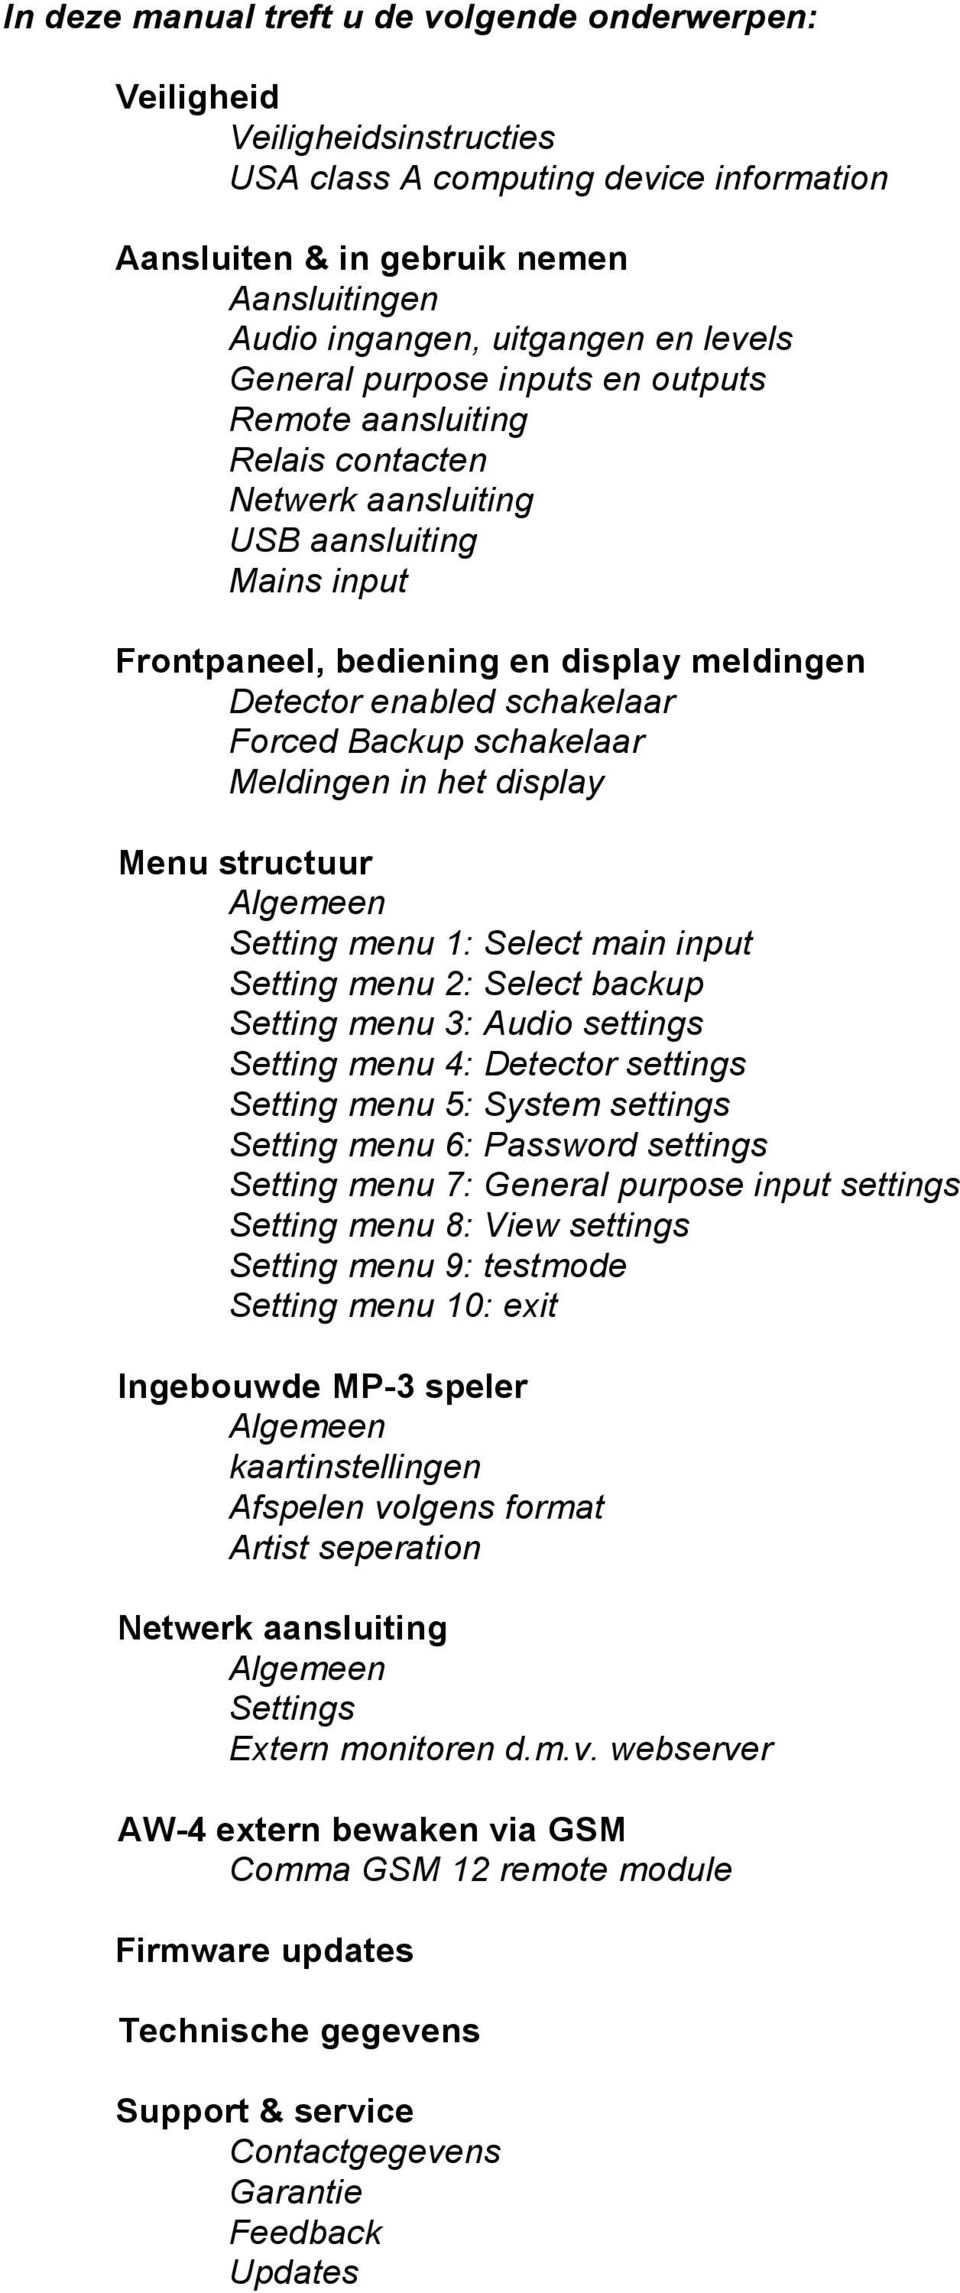 Forced Backup schakelaar Meldingen in het display Menu structuur Algemeen Setting menu 1: Select main input Setting menu 2: Select backup Setting menu 3: Audio settings Setting menu 4: Detector